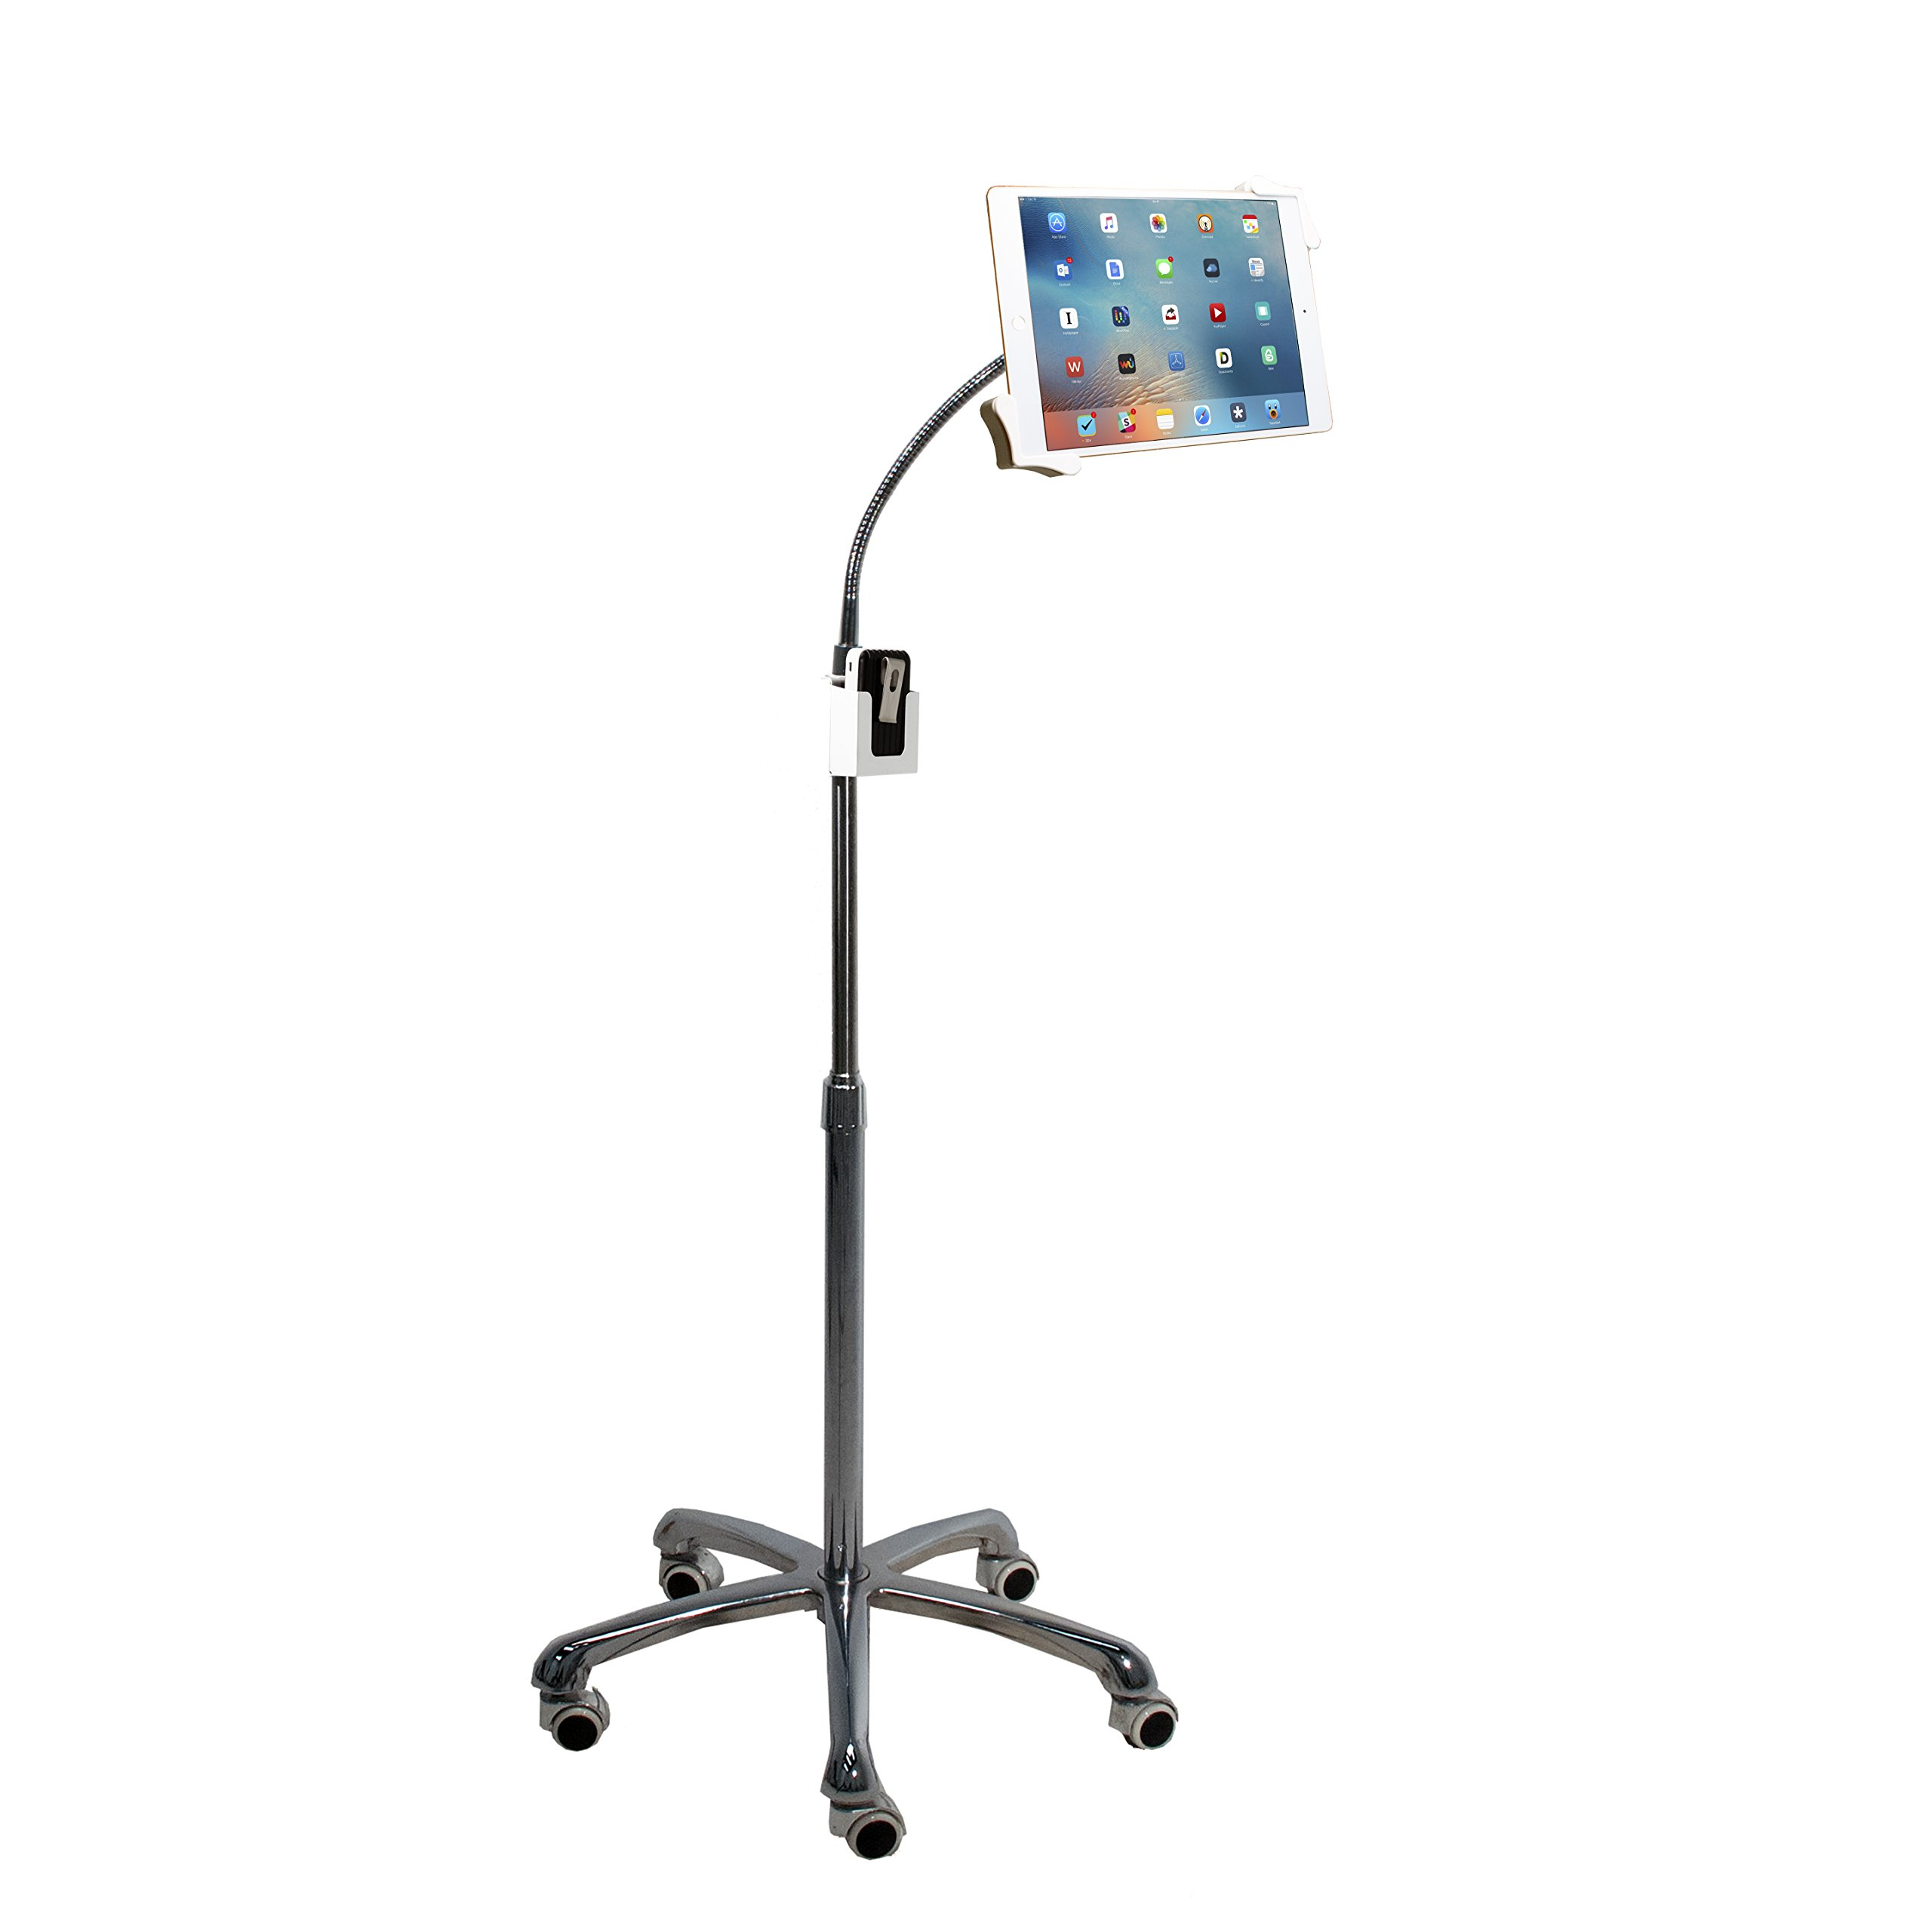 CTA Digital PAD-HFS Heavy-Duty Gooseneck Floor Stand for 7-13'' Tablets